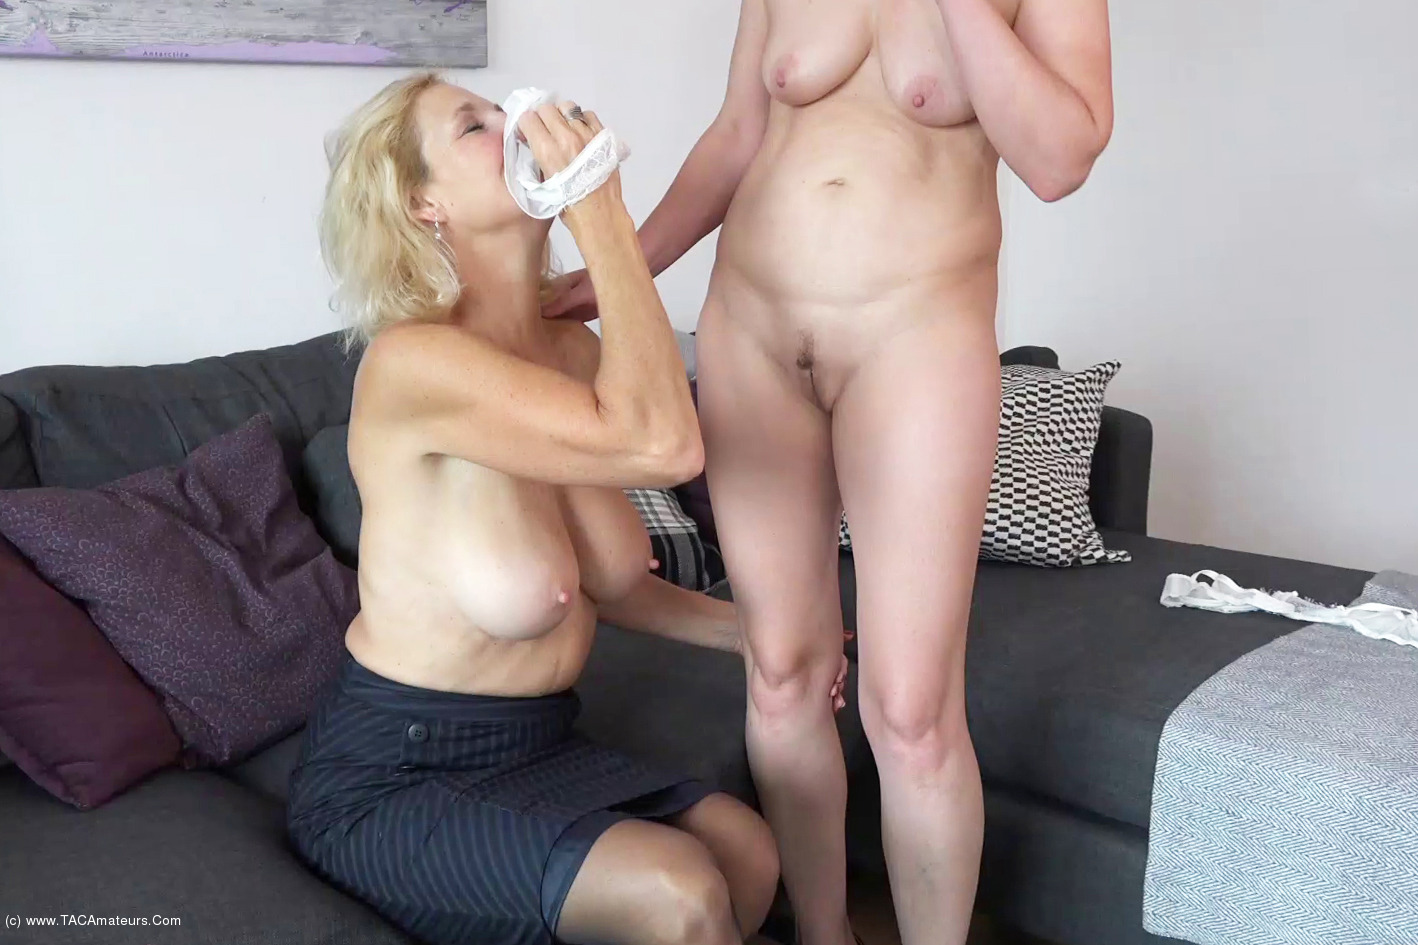 MollyMILF - Home From The Office Pt2 scene 3